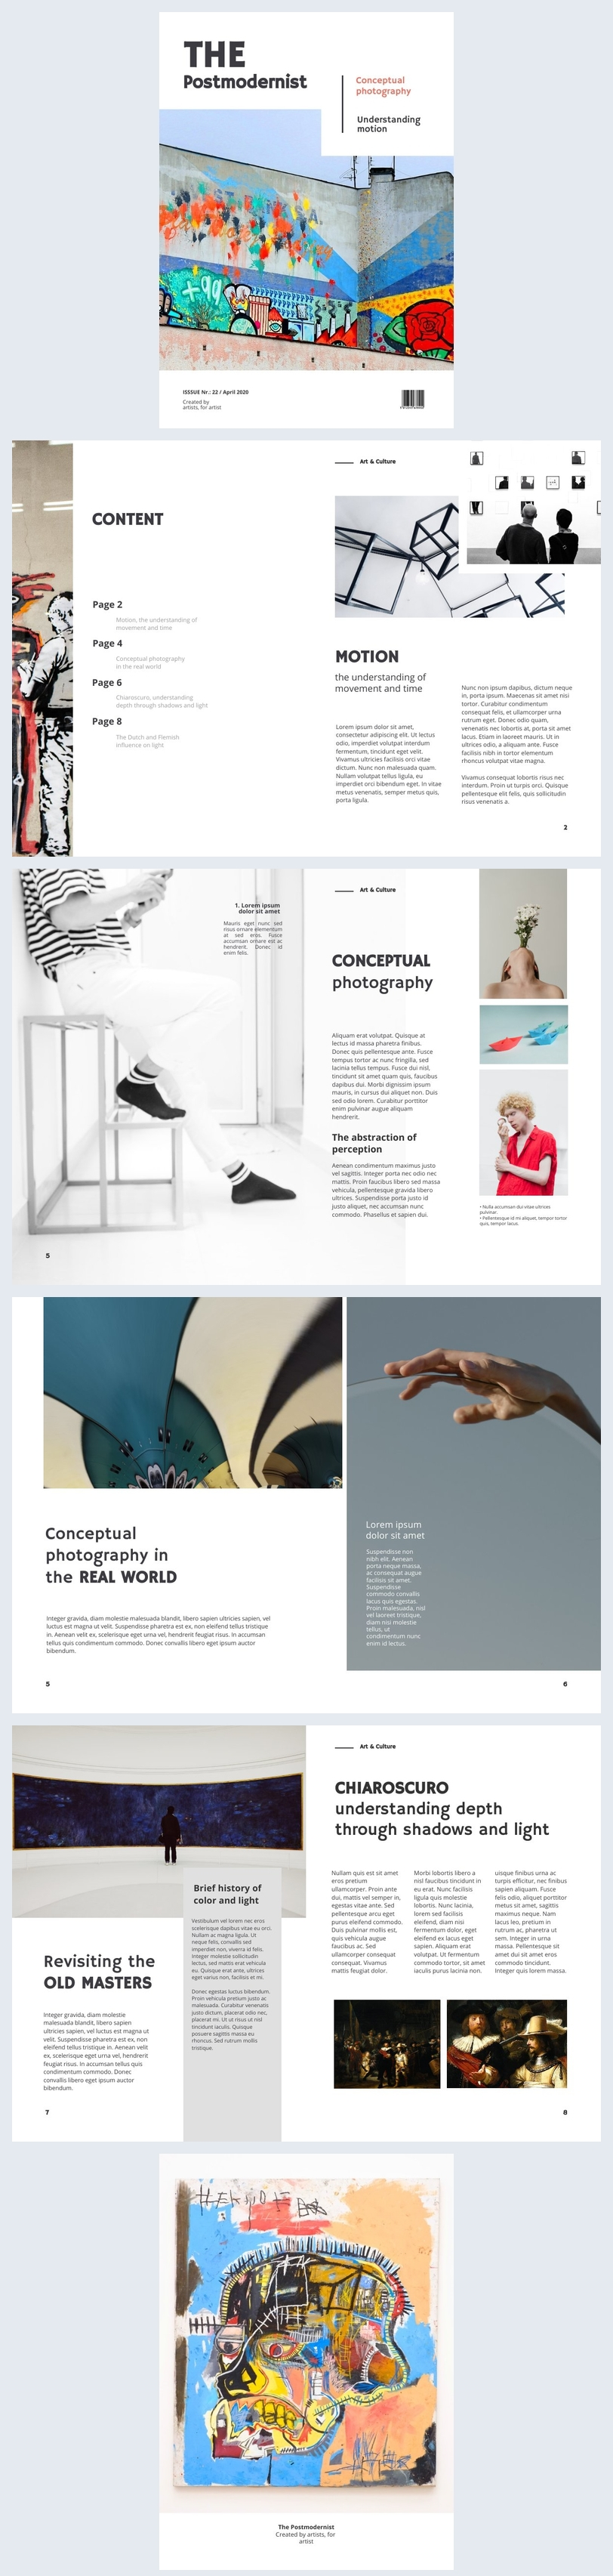 Ideia de Layout de Design de Revista de Arte